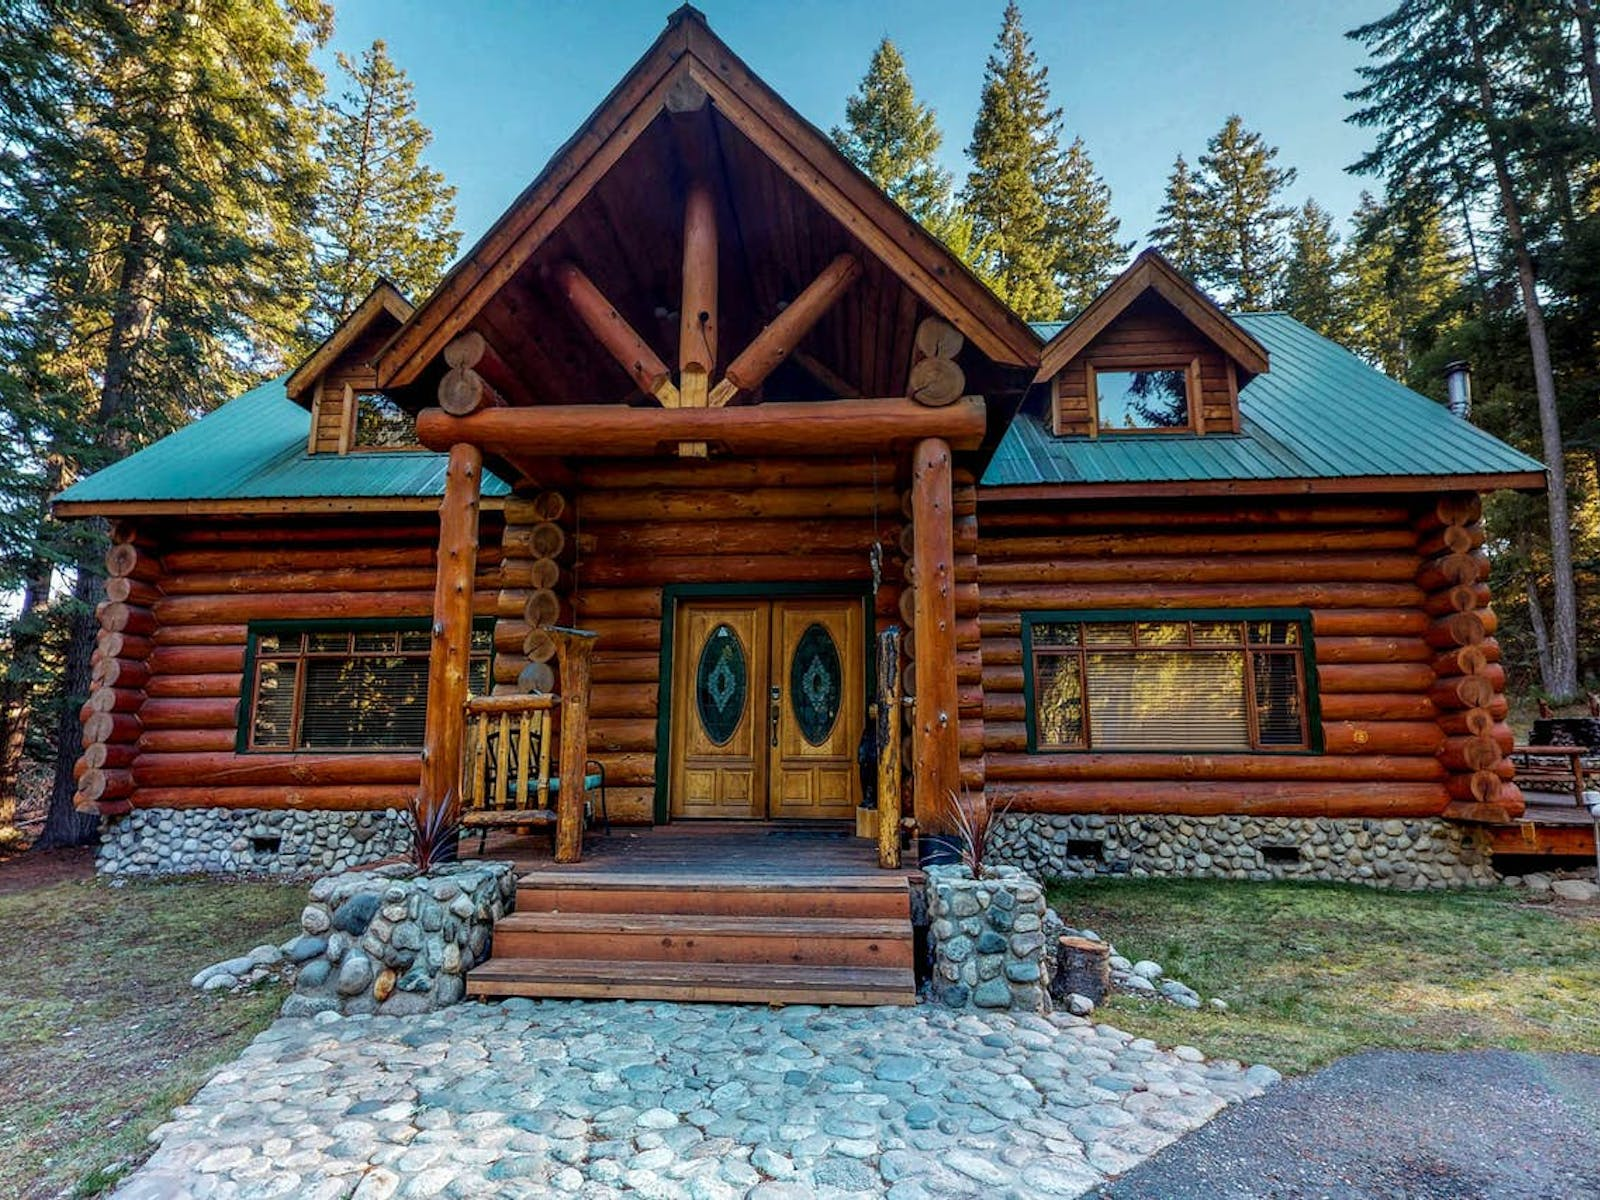 log cabin located in Leavenworth, WA